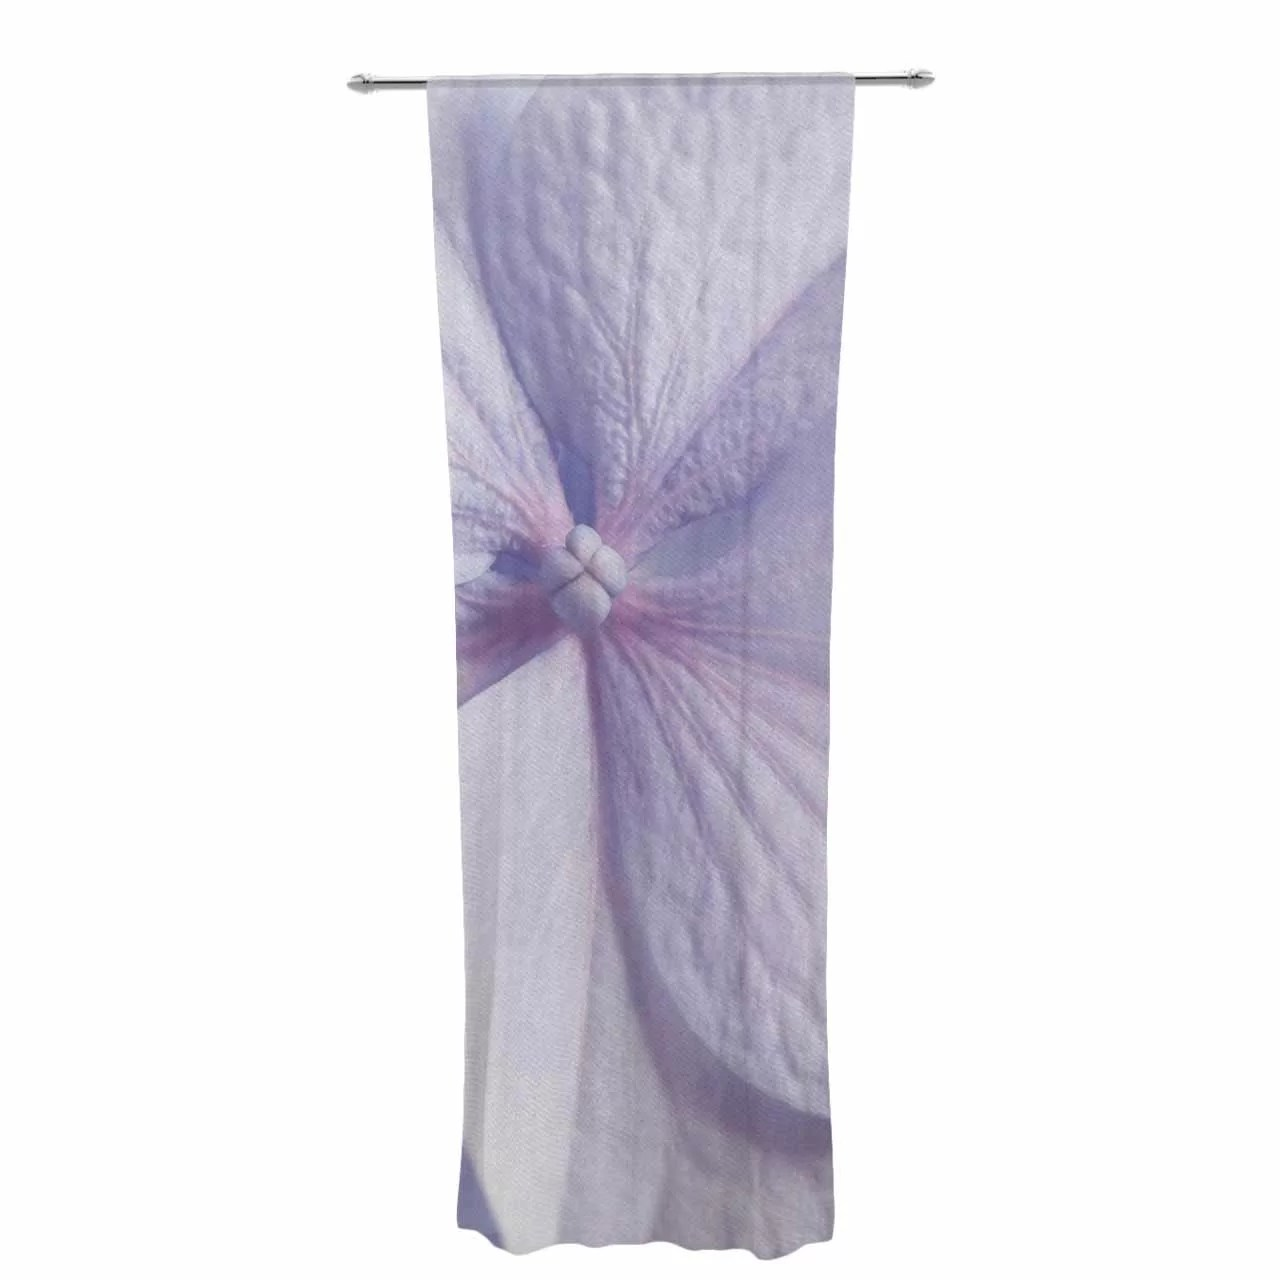 Lavender Sheer Curtains Suzanne Harford Hydrangea Flower Lavender Decorative Nature Sheer Rod Pocket Curtain Panels